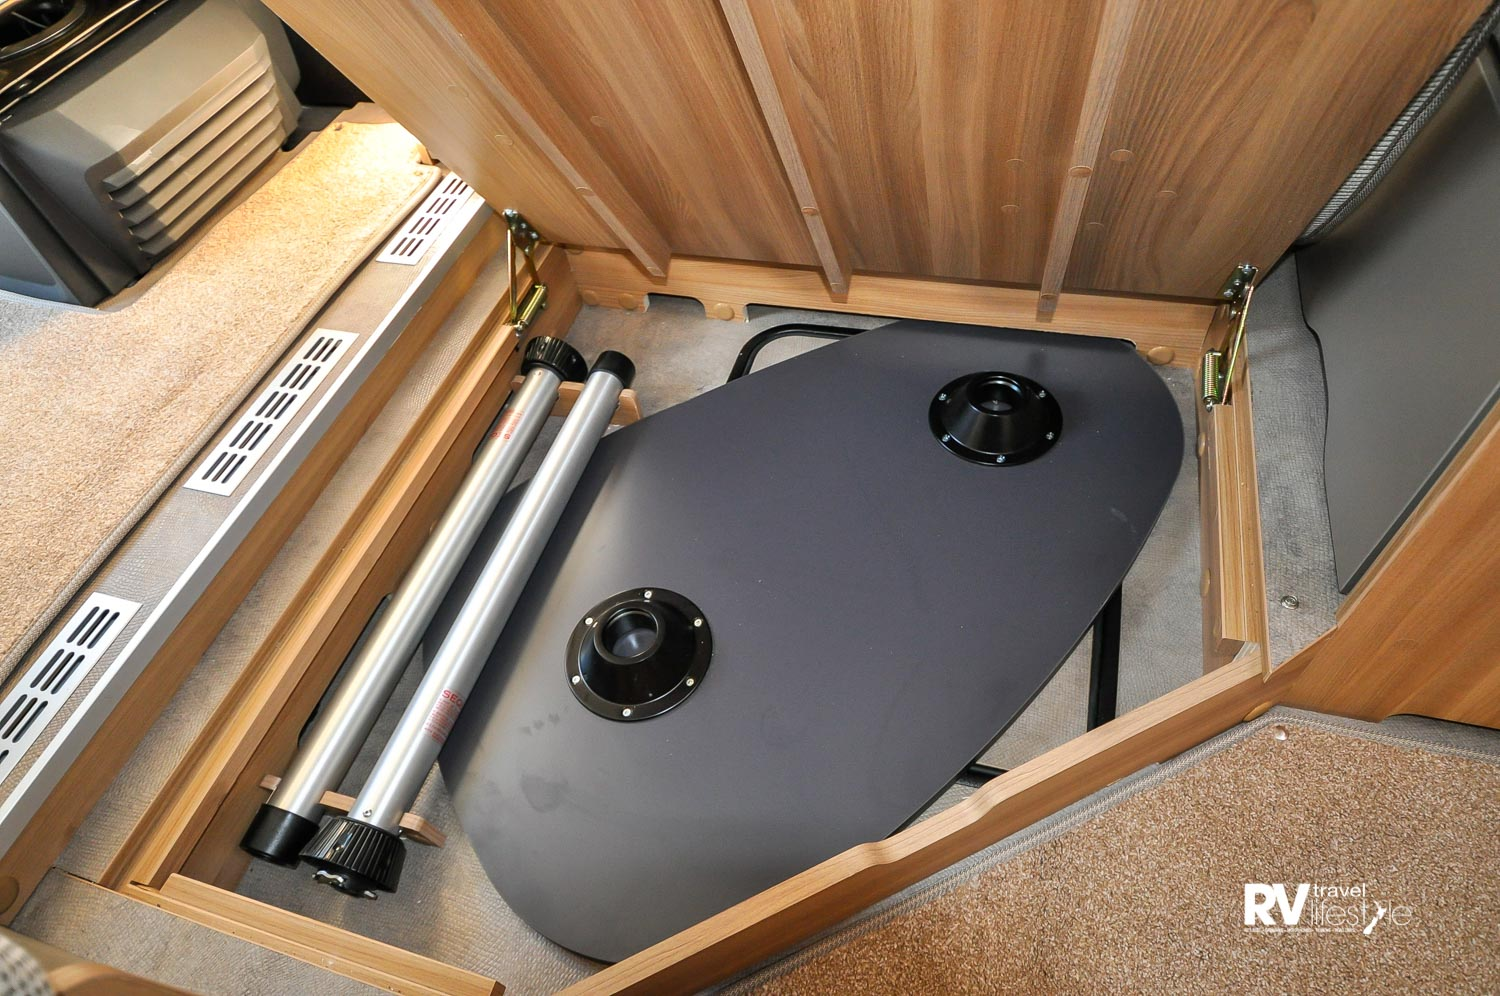 The dining table and legs are stored in the floor itself, and a second hatch under that gives access for maintenance as required to fixtures fitted in the sub floor